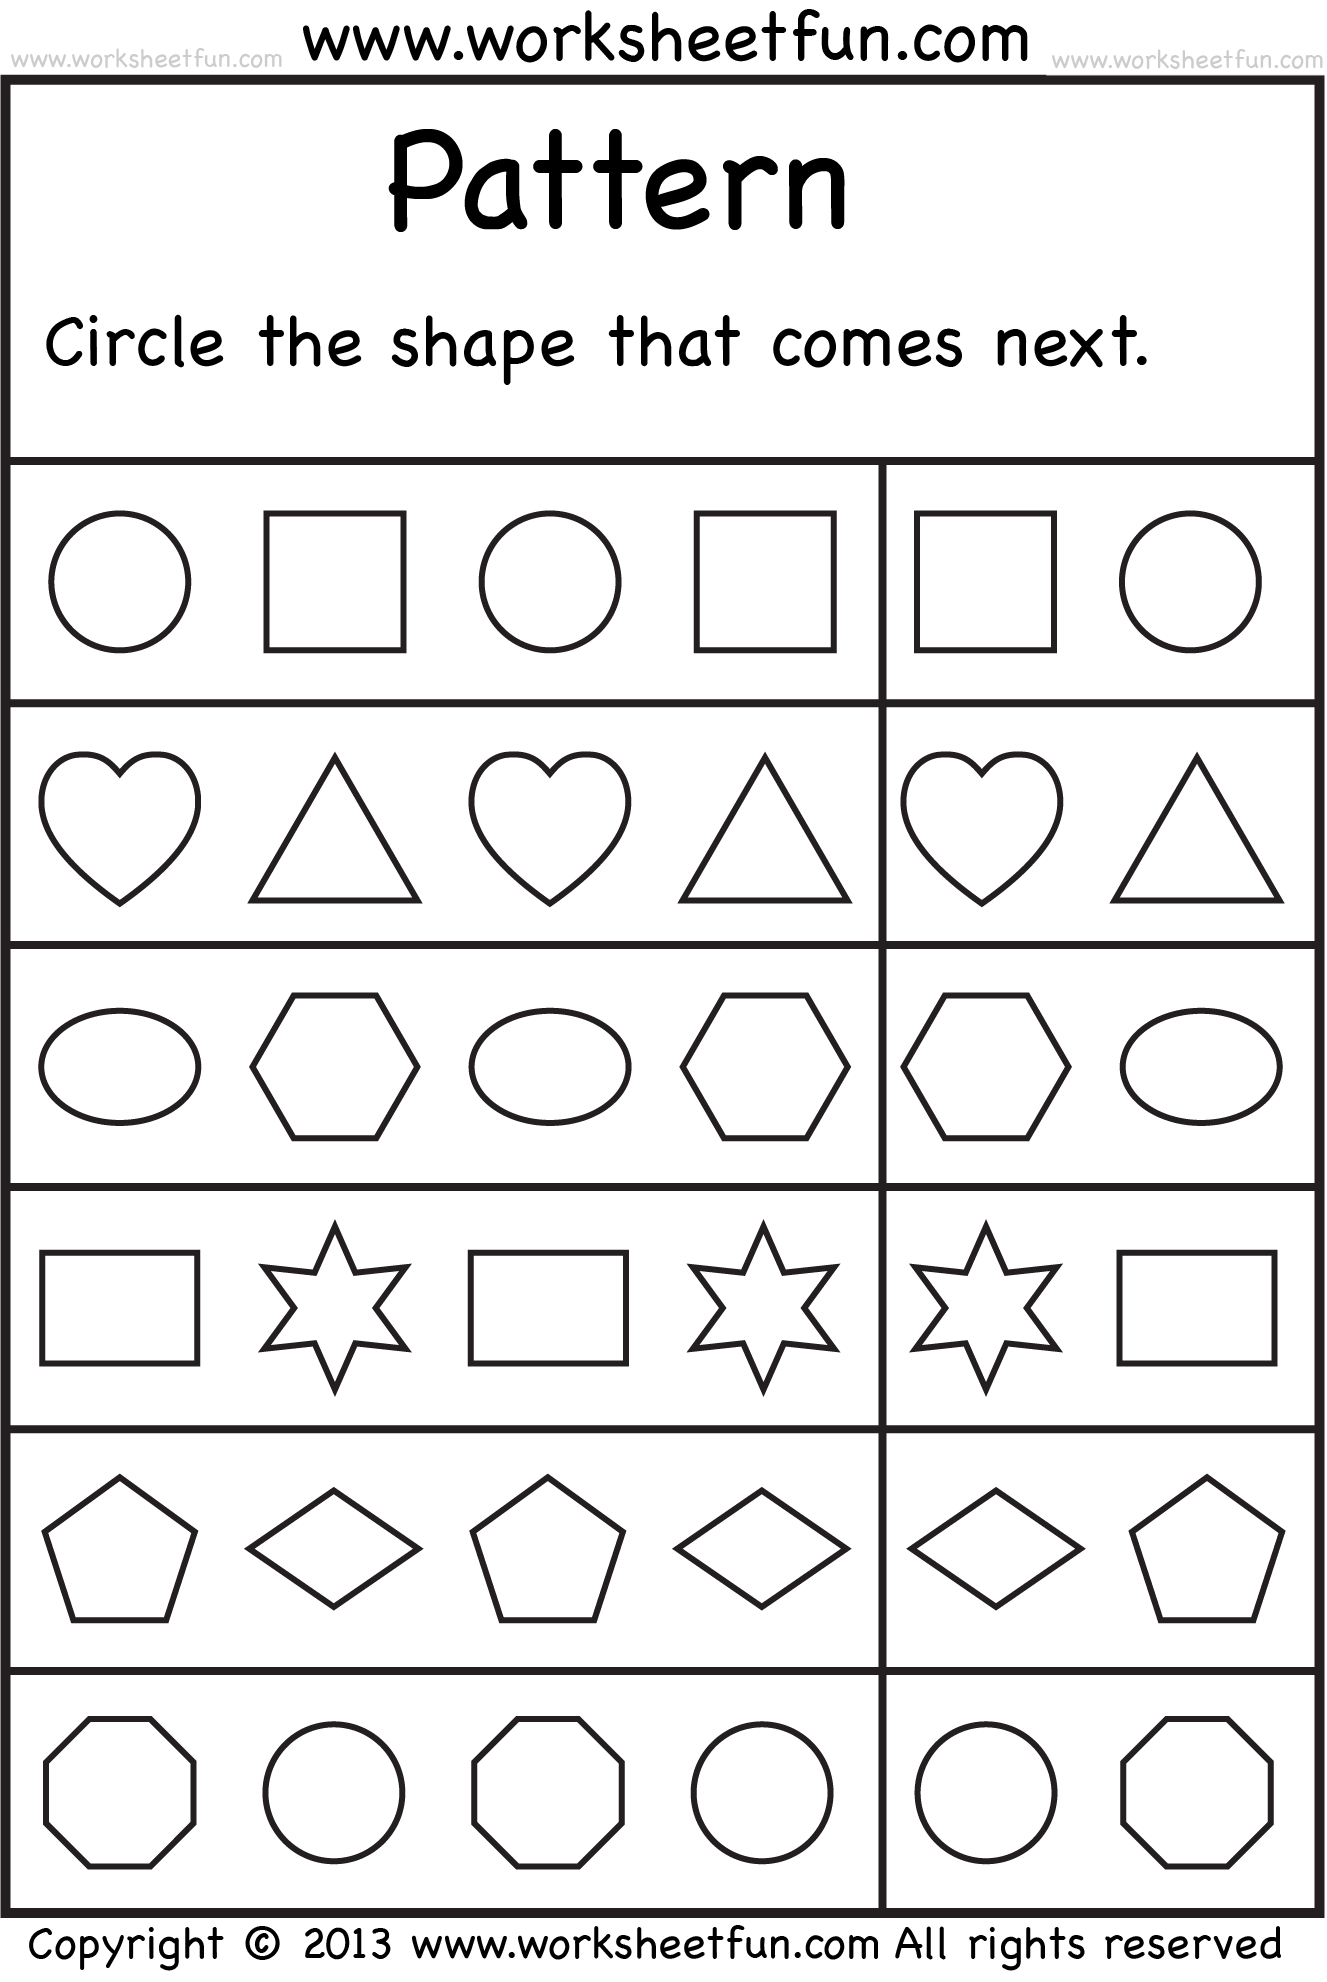 Proatmealus  Wonderful  Images About School Worksheets On Pinterest  Number Words  With Marvelous  Images About School Worksheets On Pinterest  Number Words Alphabet Worksheets And Free Printable Kindergarten Worksheets With Enchanting Mixed Integers Worksheet Also Symbol Worksheet In Addition Set Theory Worksheet And Sequencing For Kindergarten Worksheets As Well As Read Across America Worksheets Additionally Character Feelings Worksheet From Pinterestcom With Proatmealus  Marvelous  Images About School Worksheets On Pinterest  Number Words  With Enchanting  Images About School Worksheets On Pinterest  Number Words Alphabet Worksheets And Free Printable Kindergarten Worksheets And Wonderful Mixed Integers Worksheet Also Symbol Worksheet In Addition Set Theory Worksheet From Pinterestcom